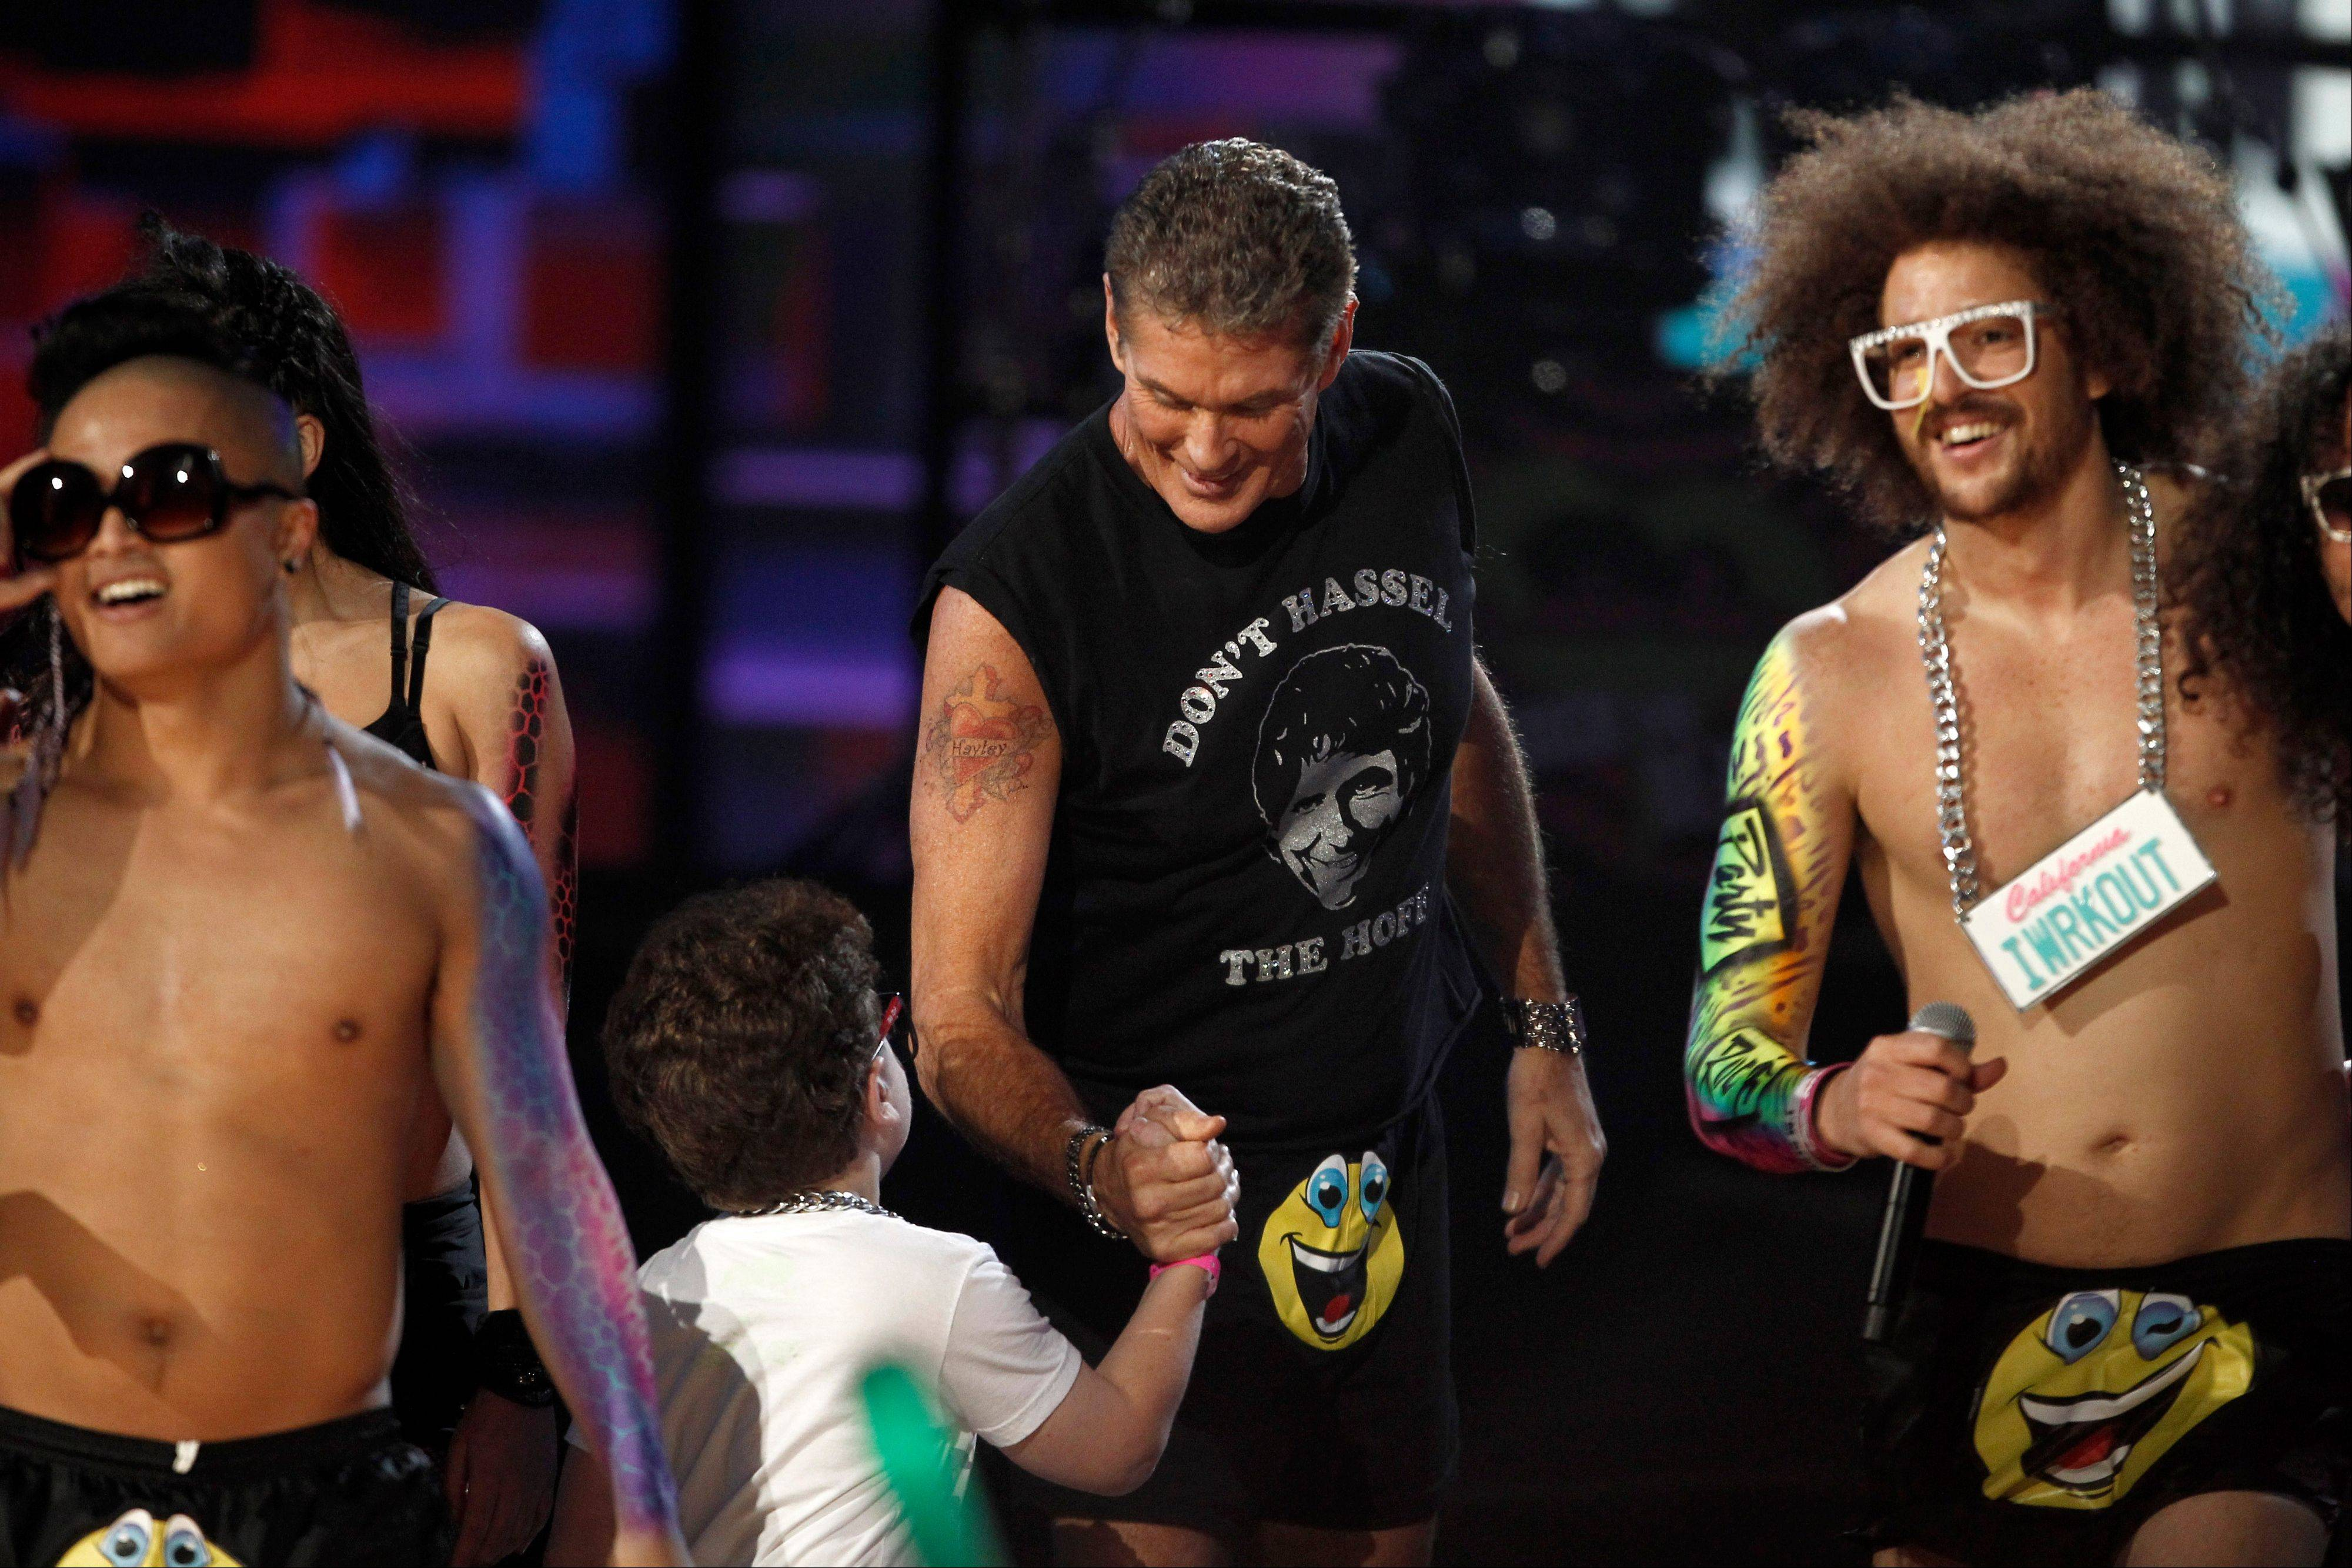 David Hasselhoff and Keenan Cahill are seen onstage while LMFAO perform at the 39th Annual American Music Awards on Sunday, Nov. 20, 2011 in Los Angeles.